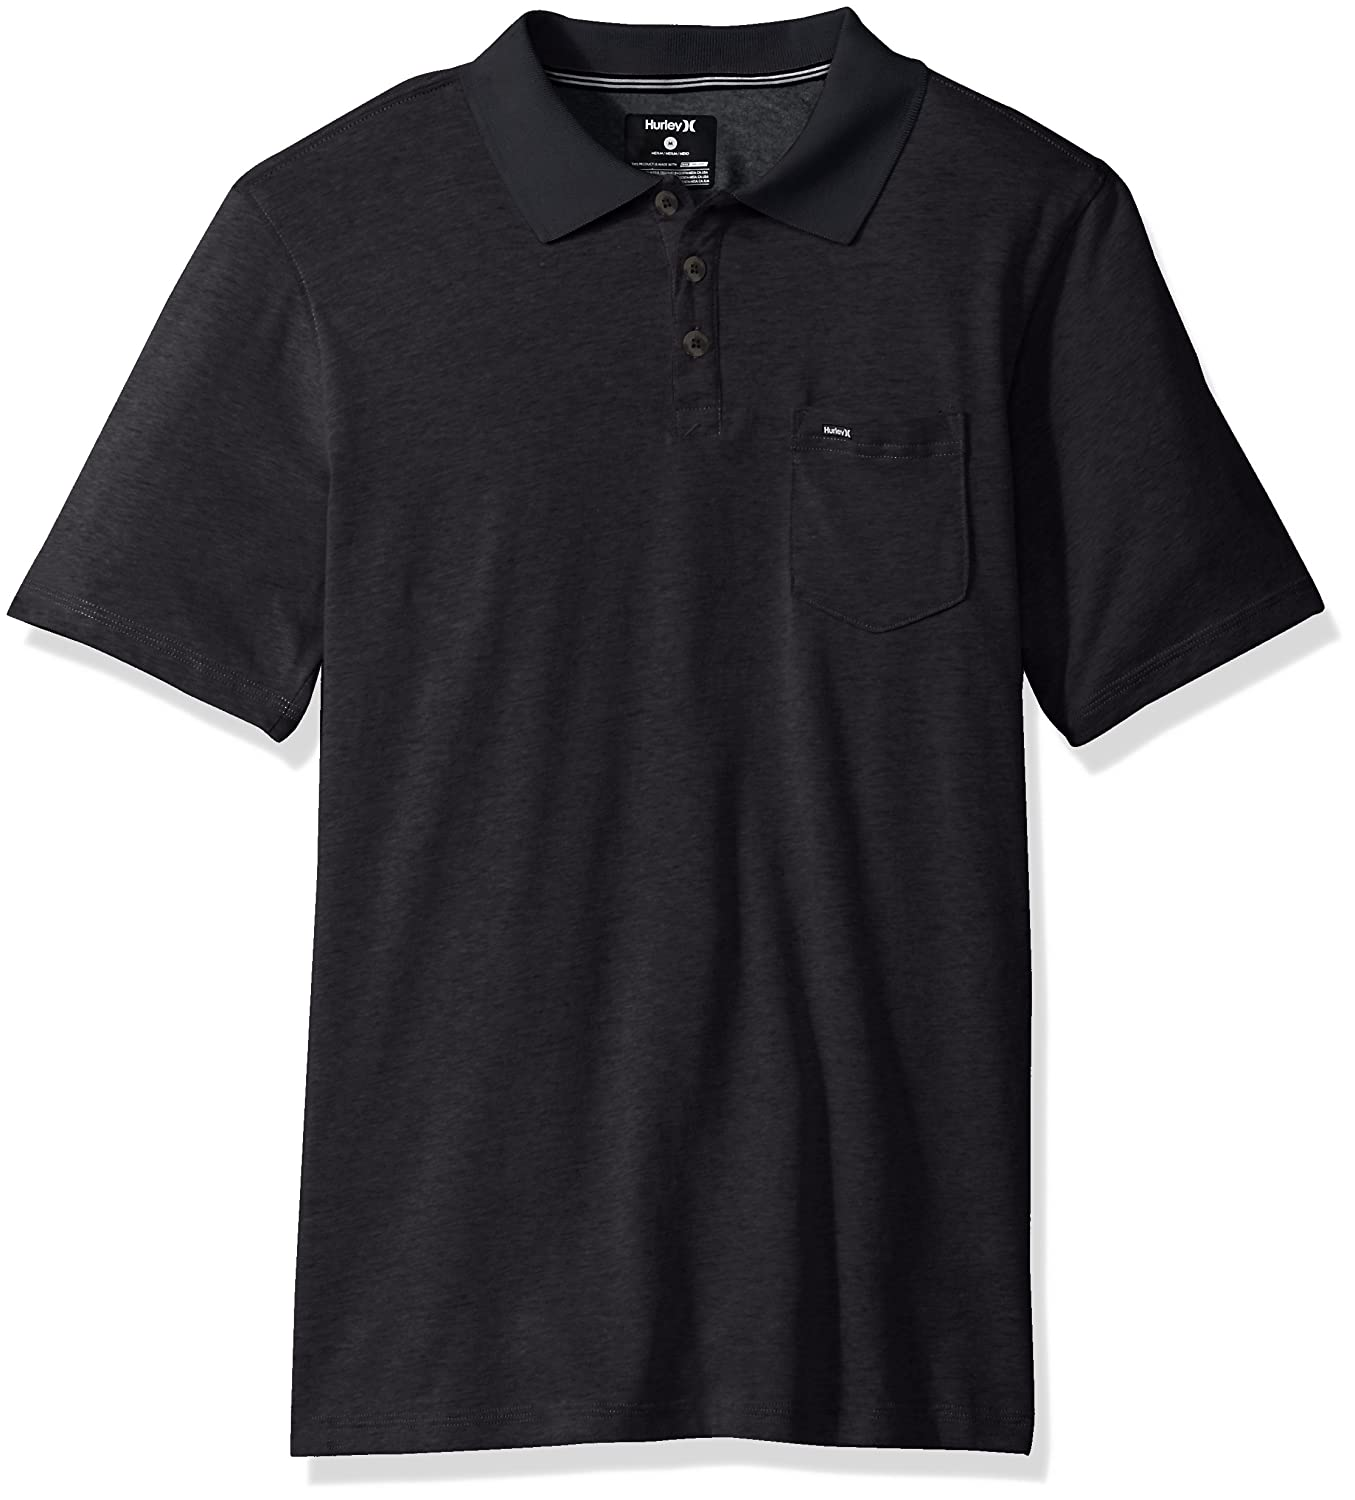 8e9534503 Hurley and Nike dry-fit logo. Show more. Nike dri-fit fabric short sleeve  three button polo.